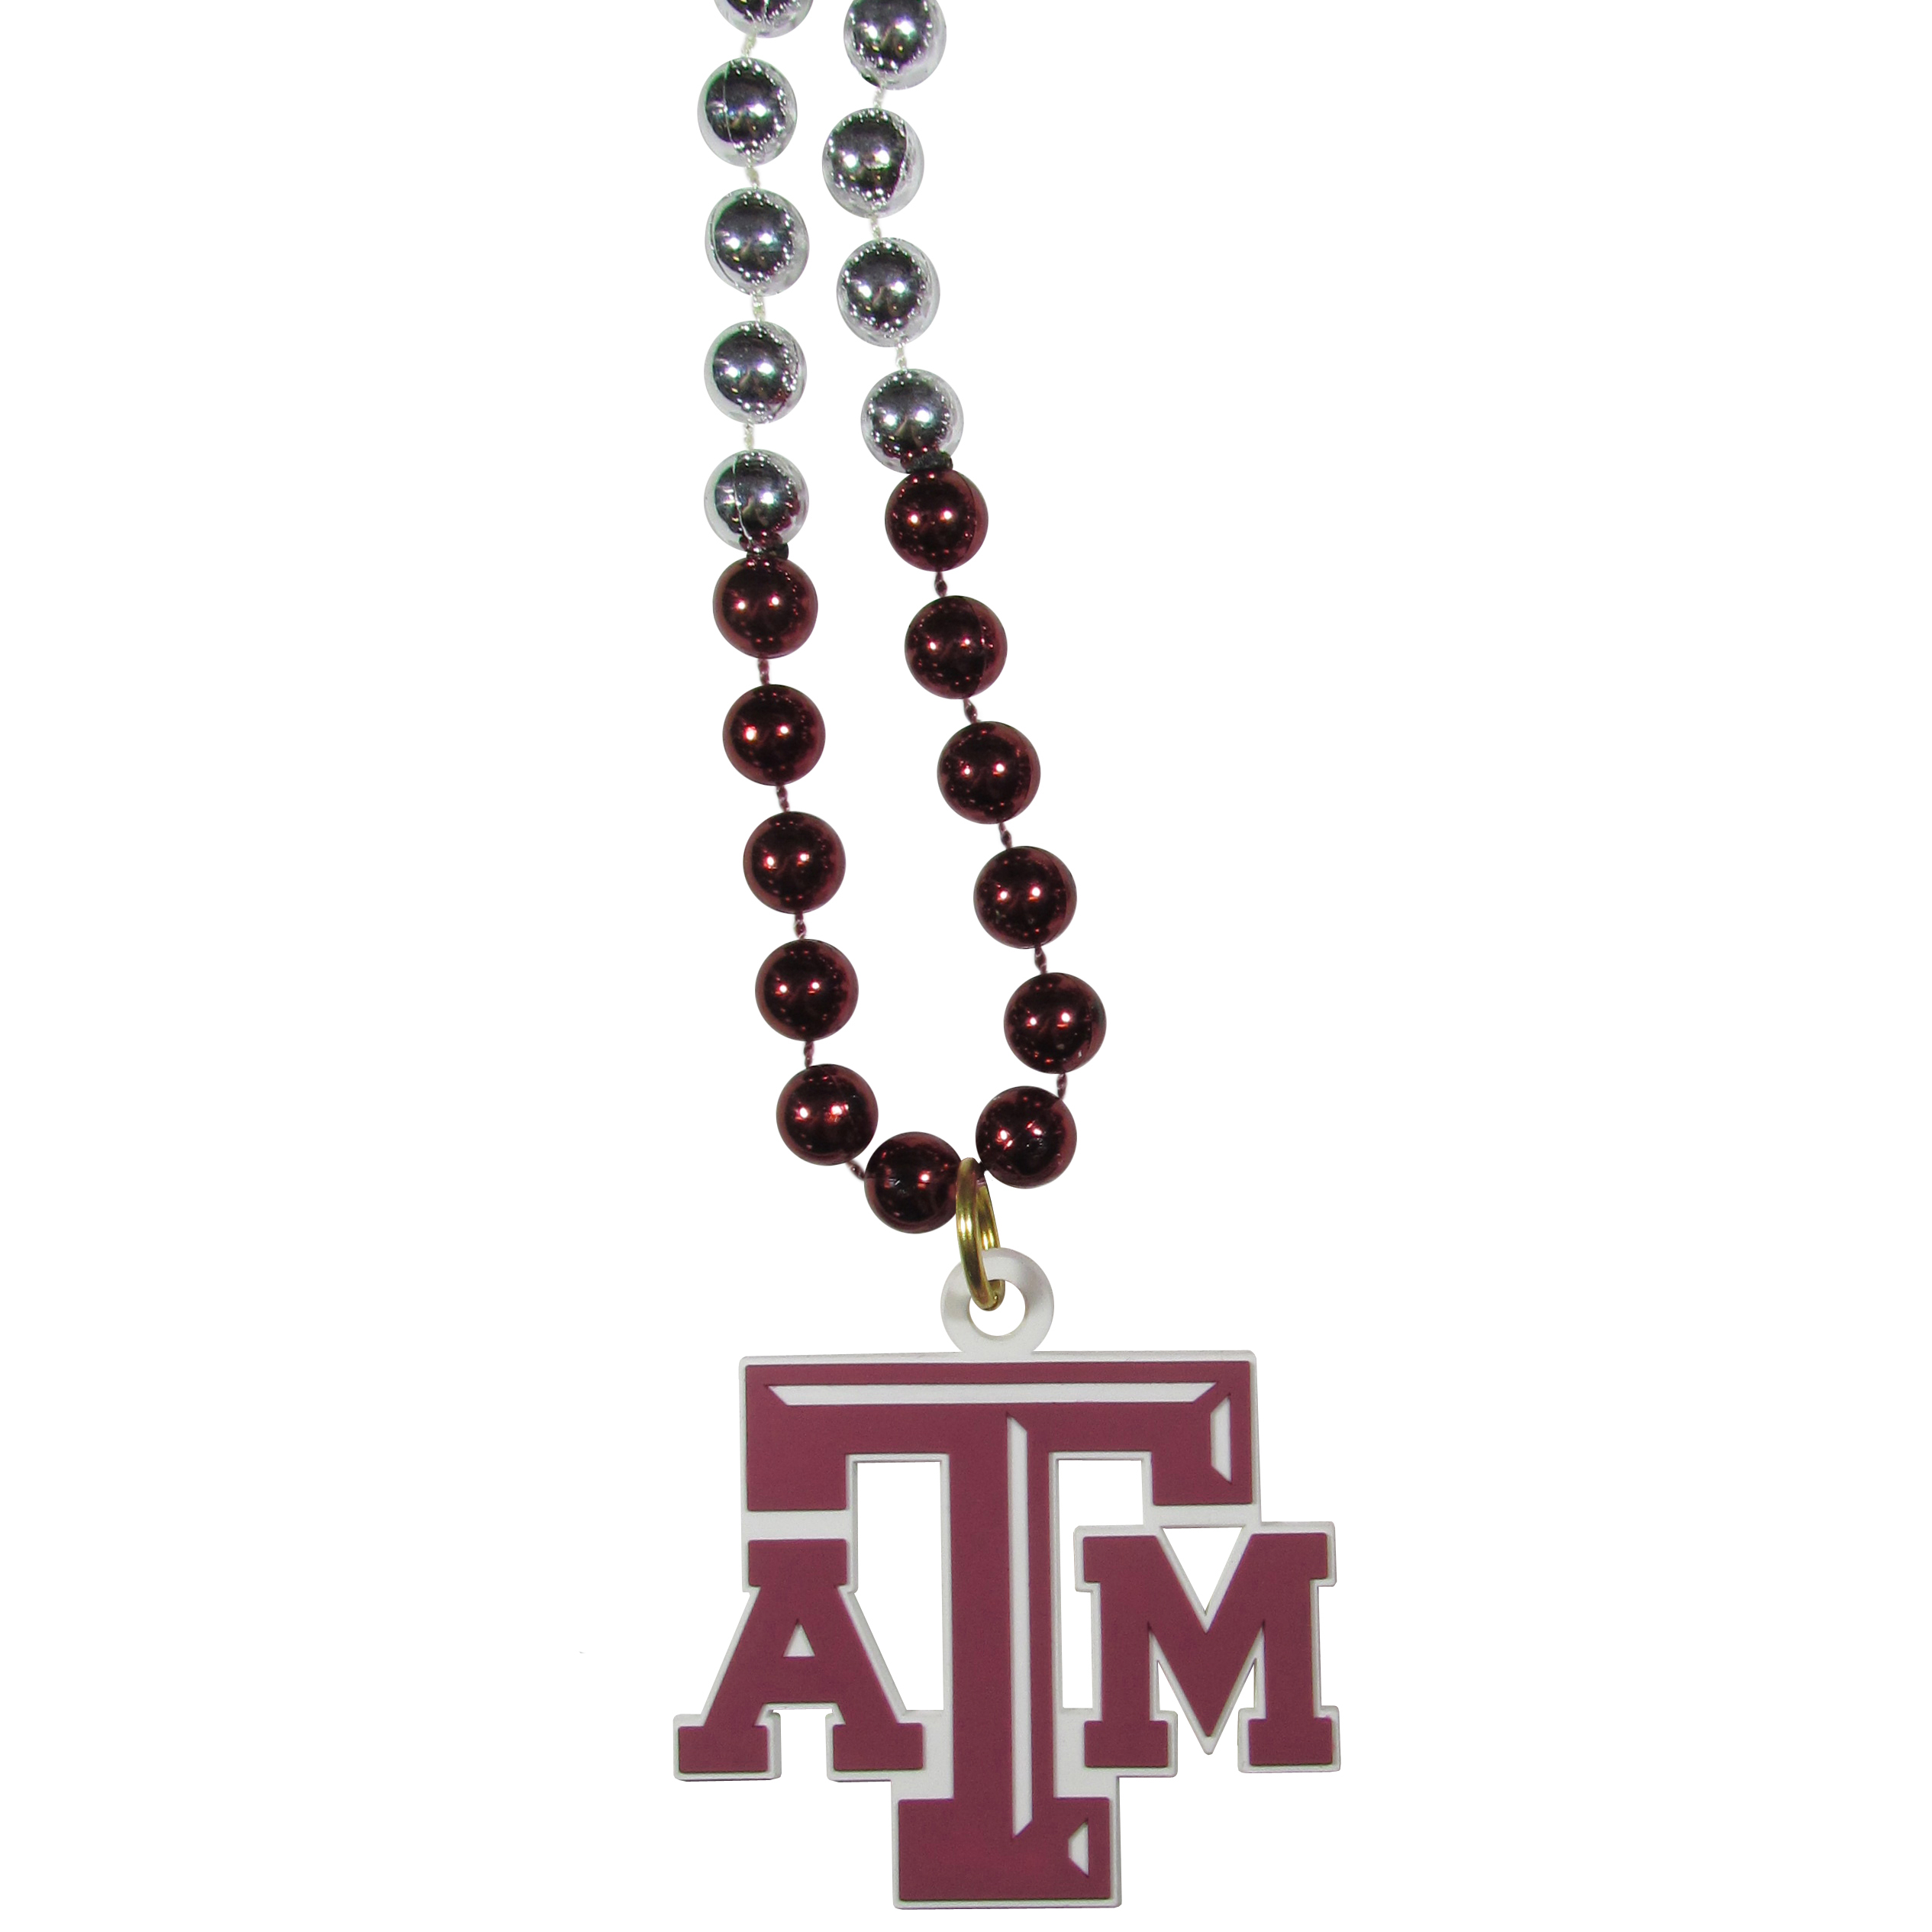 Texas A and M Aggies Mardi Gras Necklace - Get the party started with this Mardi Gras inspired bead necklace. The flashy beads have a shiny finish and come in bright team colors strung together on a 36 inch string so you can make a big statement on game day! The beads come with an extra large flexible team logo that is a full 3 inches at its widest point. This trendy and bold necklace screams out your Texas A & M Aggies pride and is a must have at game time!